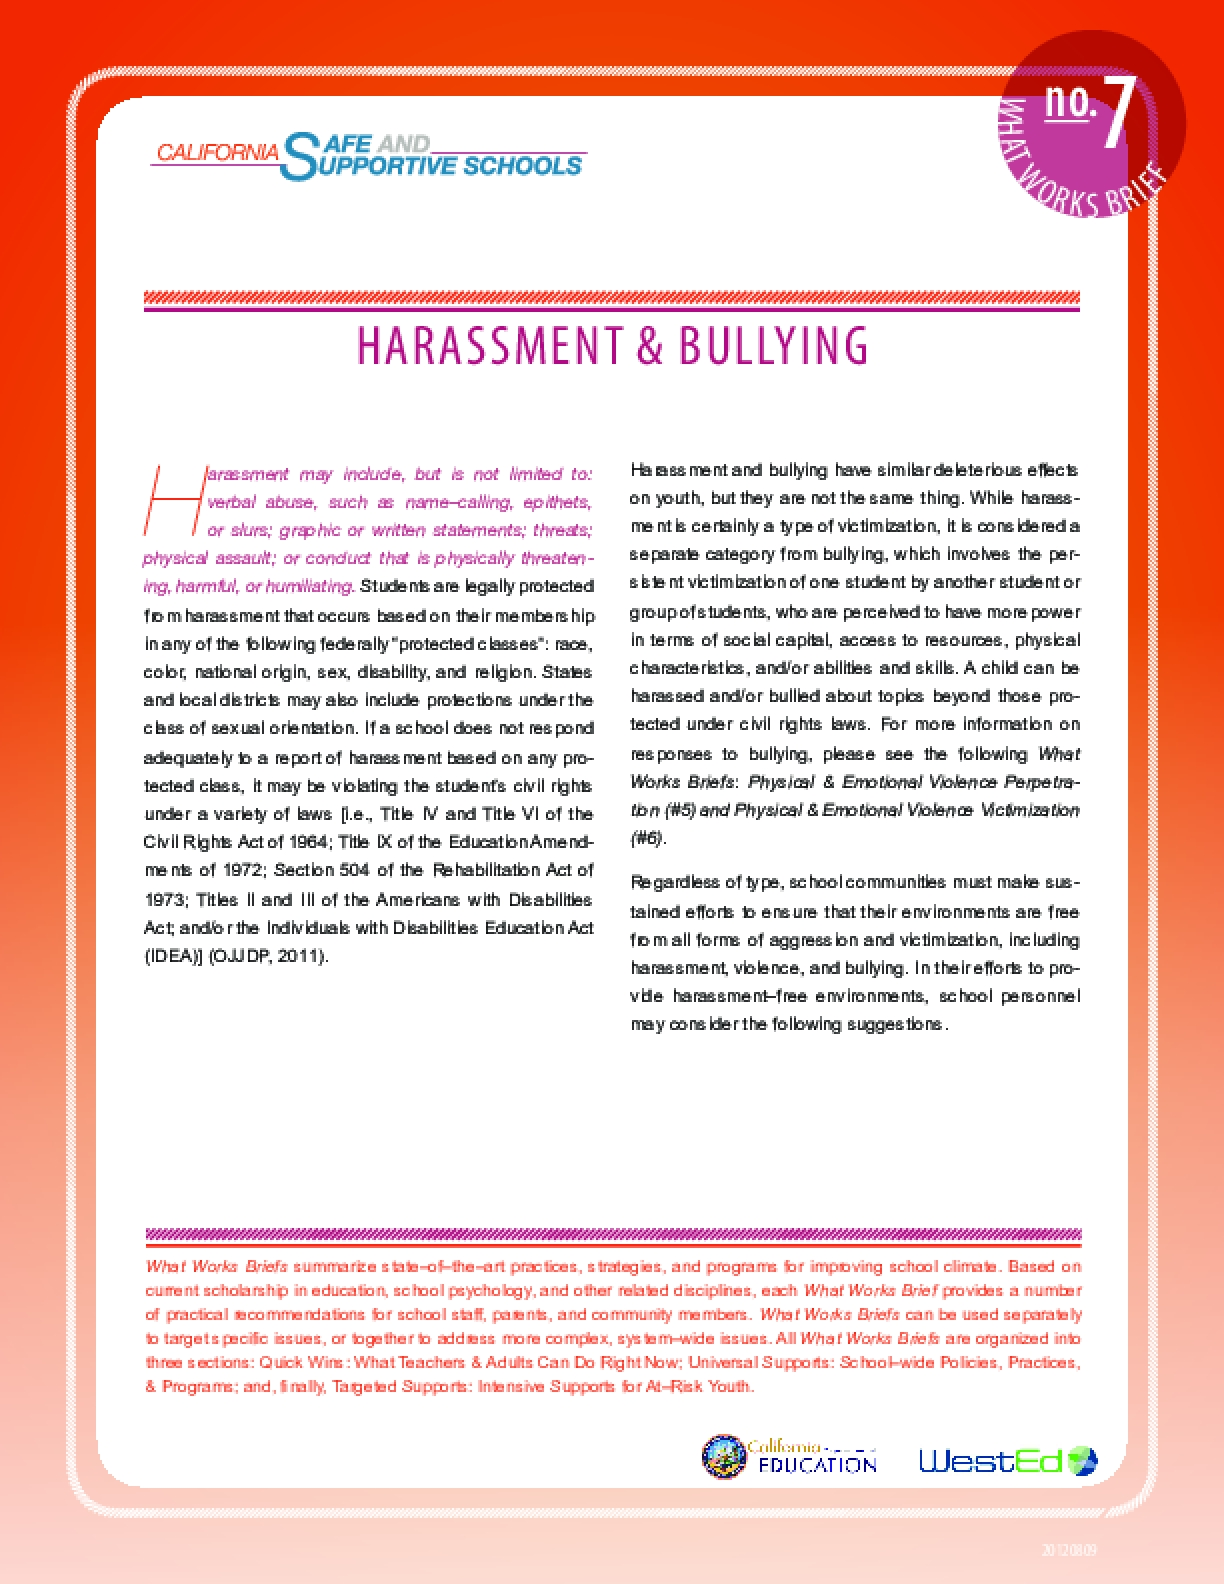 What Works Brief #7: Harassment and Bullying